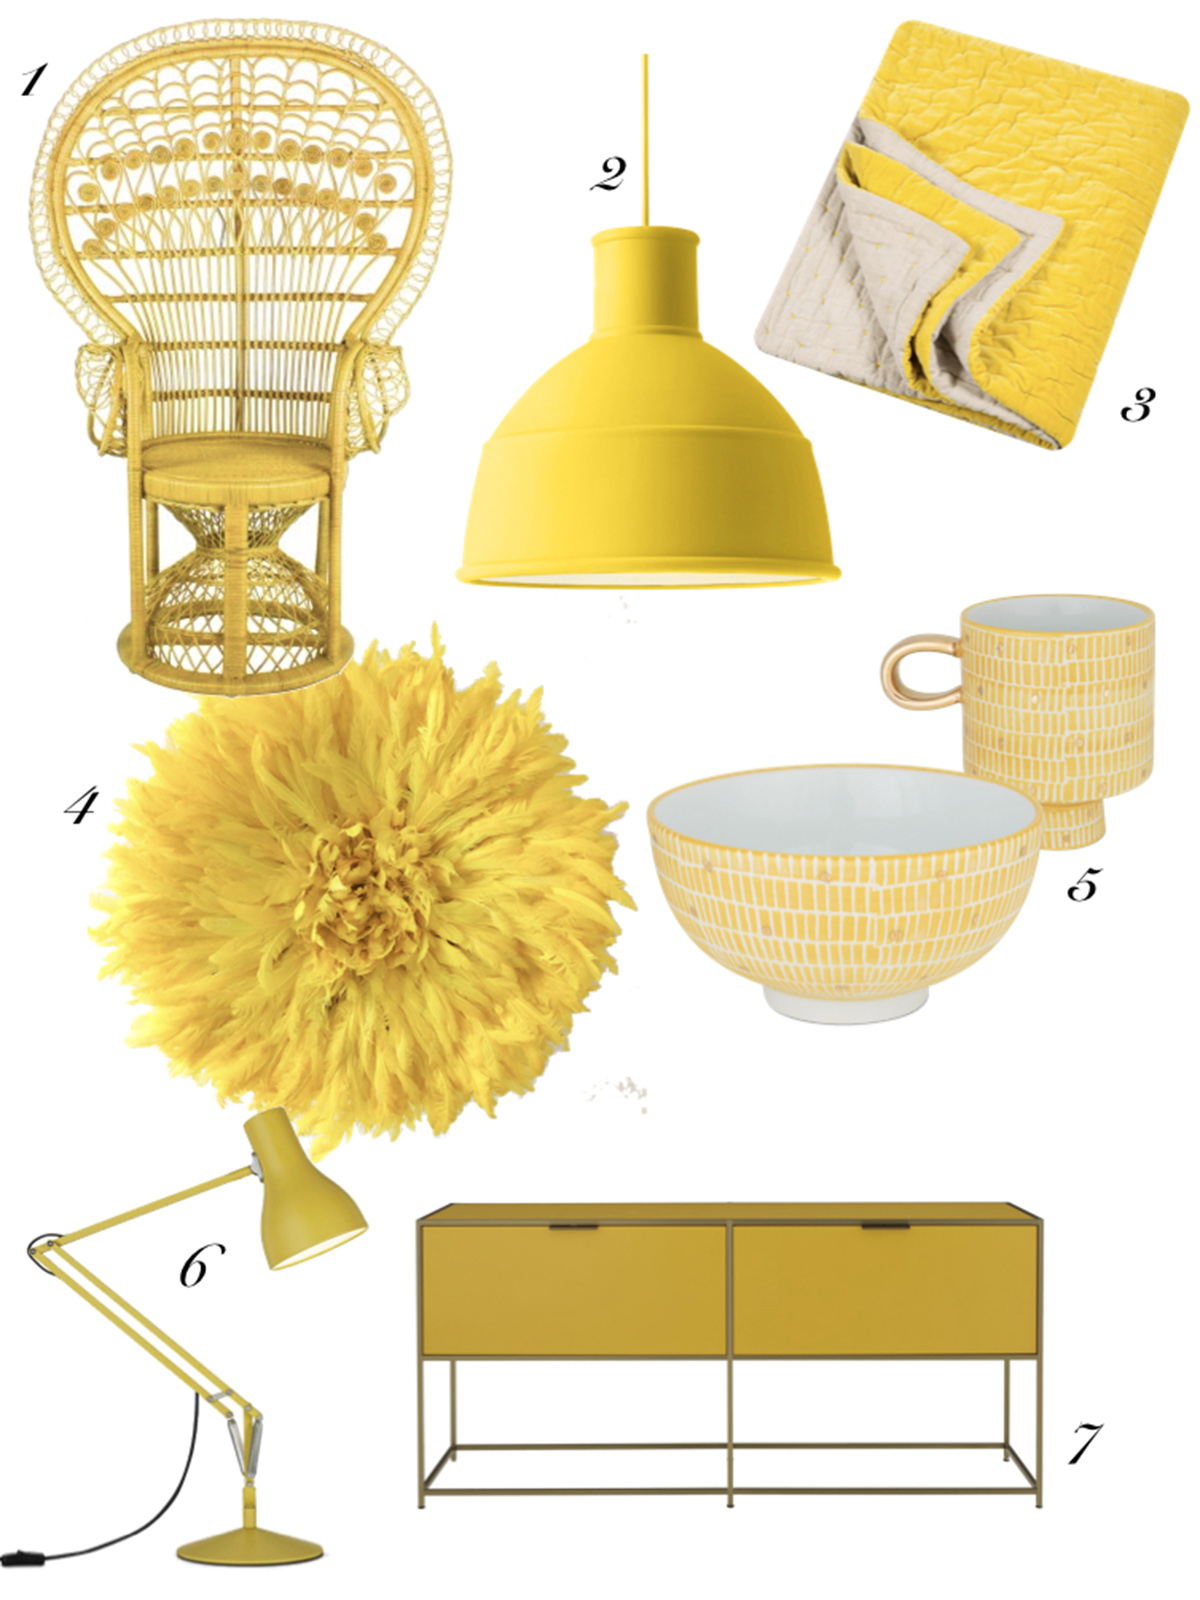 Sophie Robinson chooses her favourite pieces of furniture and accessories in a bright and sunny hue as part of her colour crush, yellow. #colourcrush #sophierobinson #yellowinterior